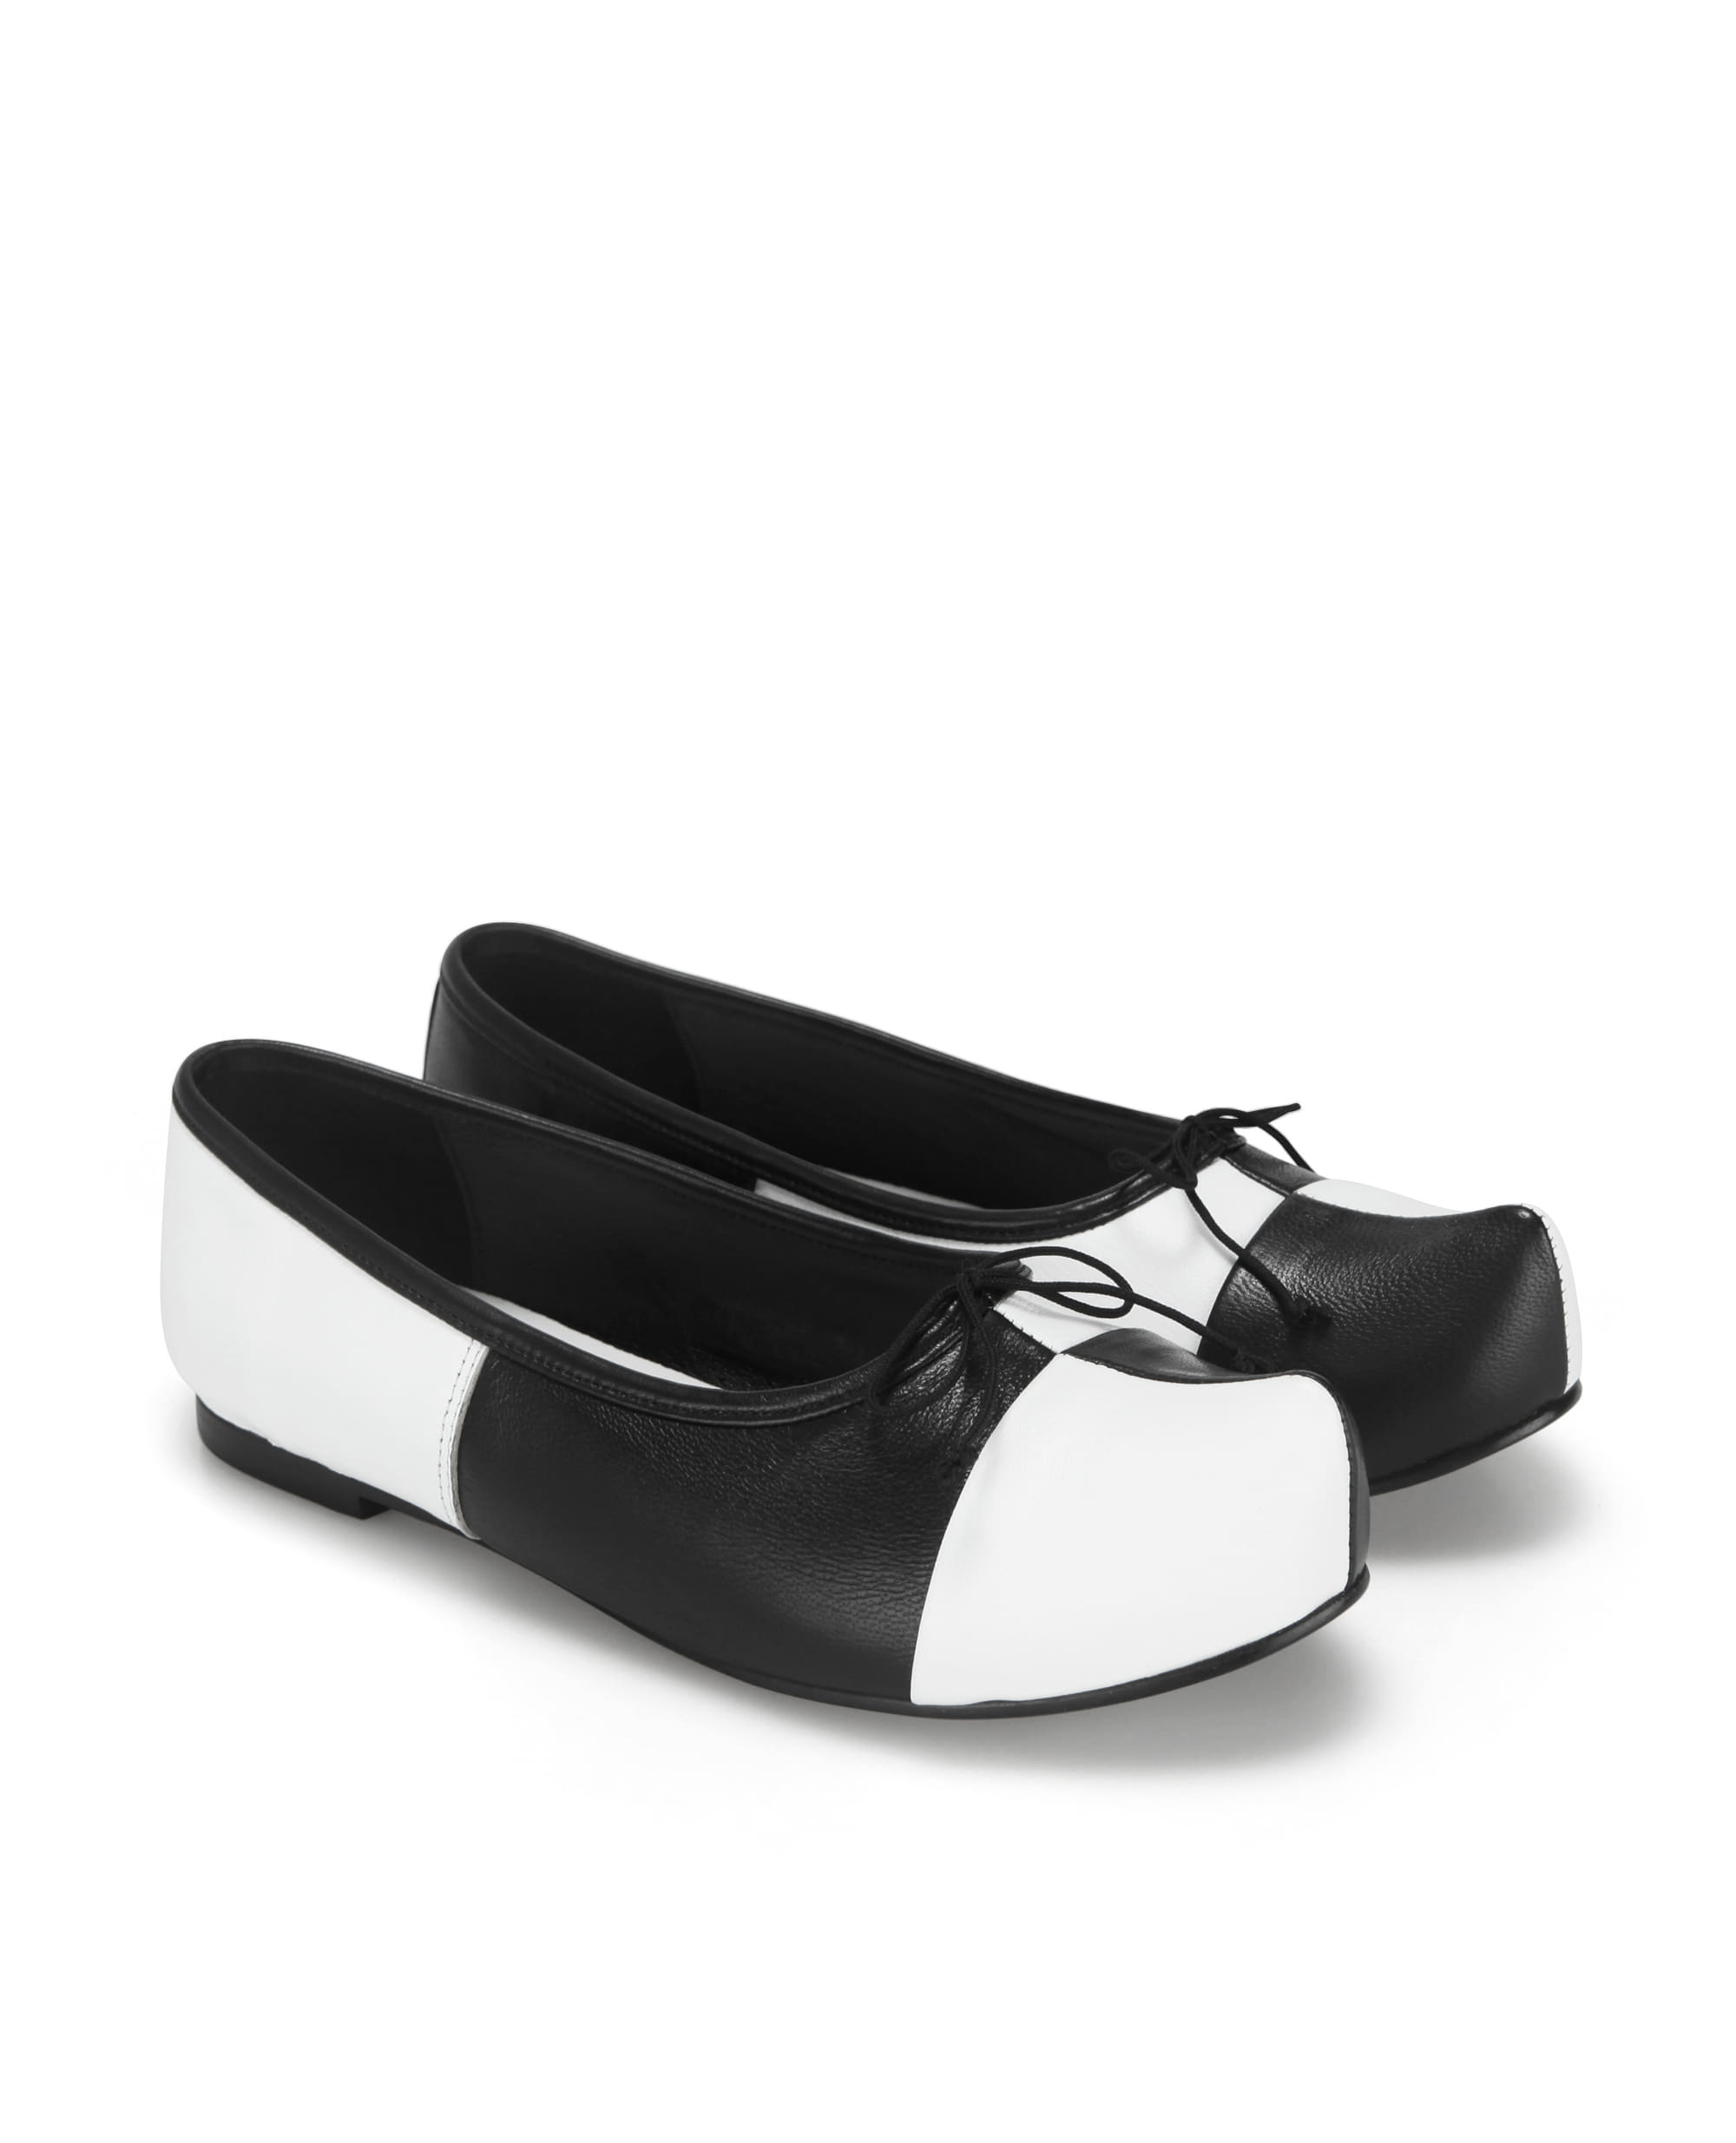 Pointed Toe Ballerina Flats | Checkerboard